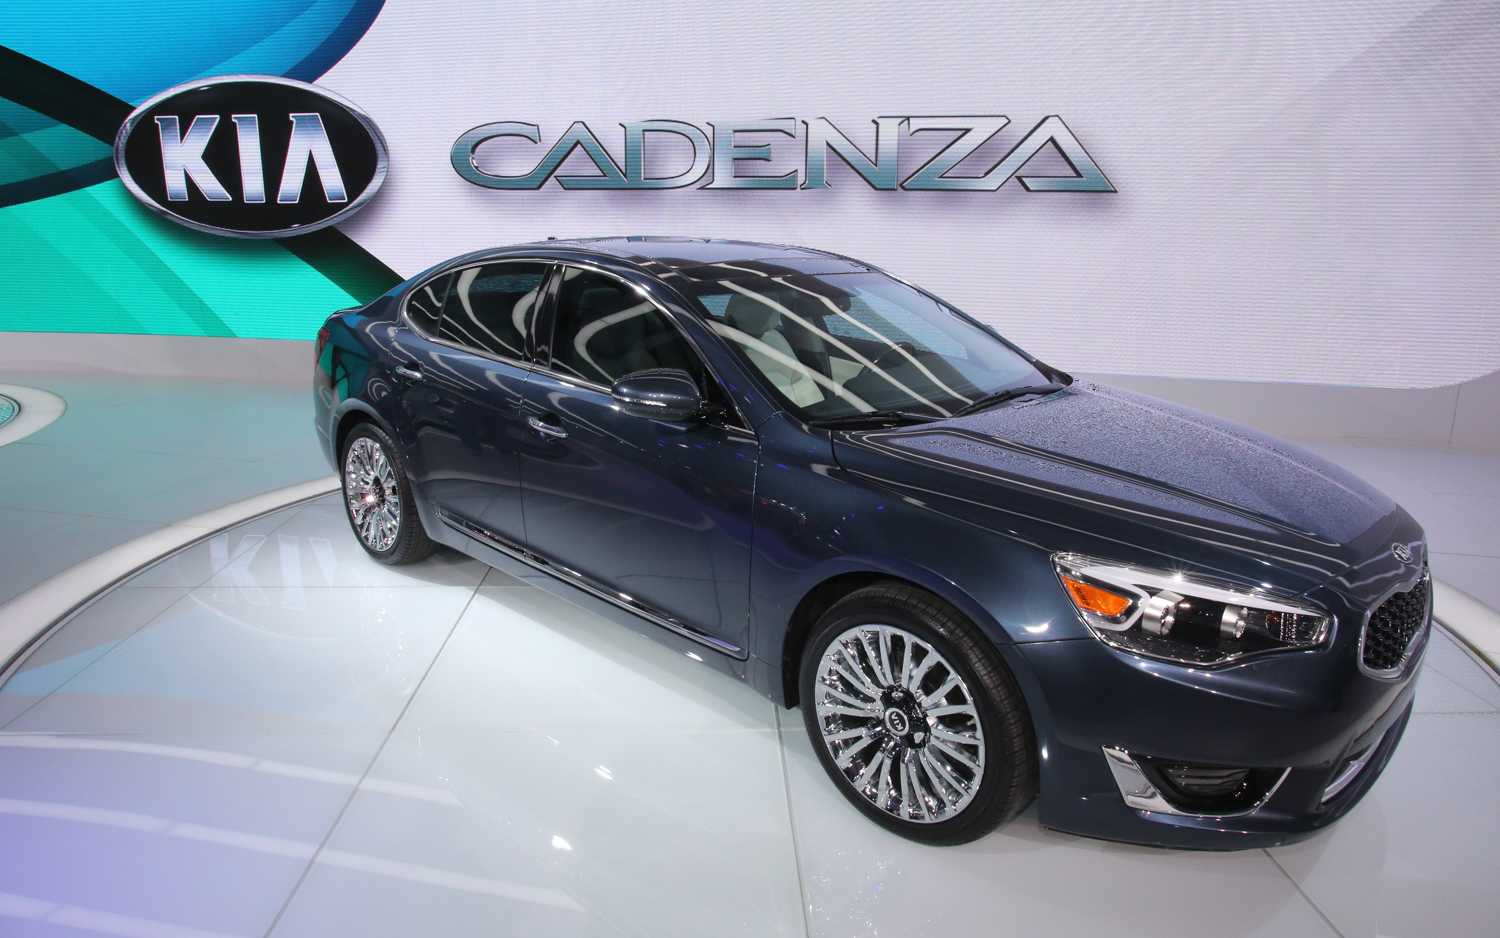 omaha ne kia h sale cadenza near view aerial of lincoln cc the for